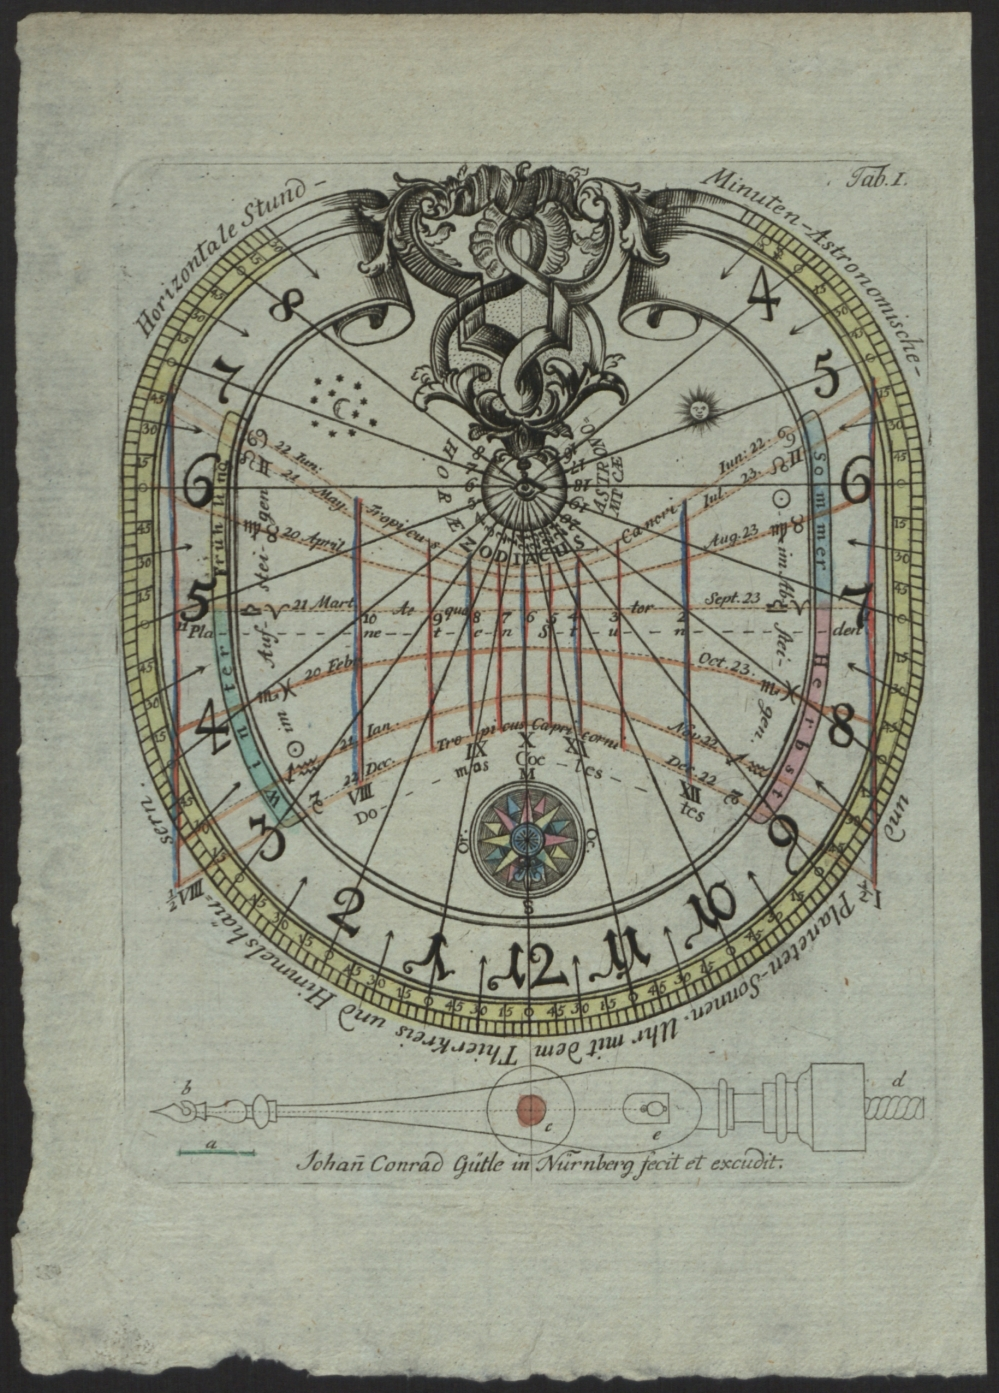 preview image for Print (Engraving) Paper sundial with gnomon by Johan Conrad Gütle, Nuremberg, 17th Century